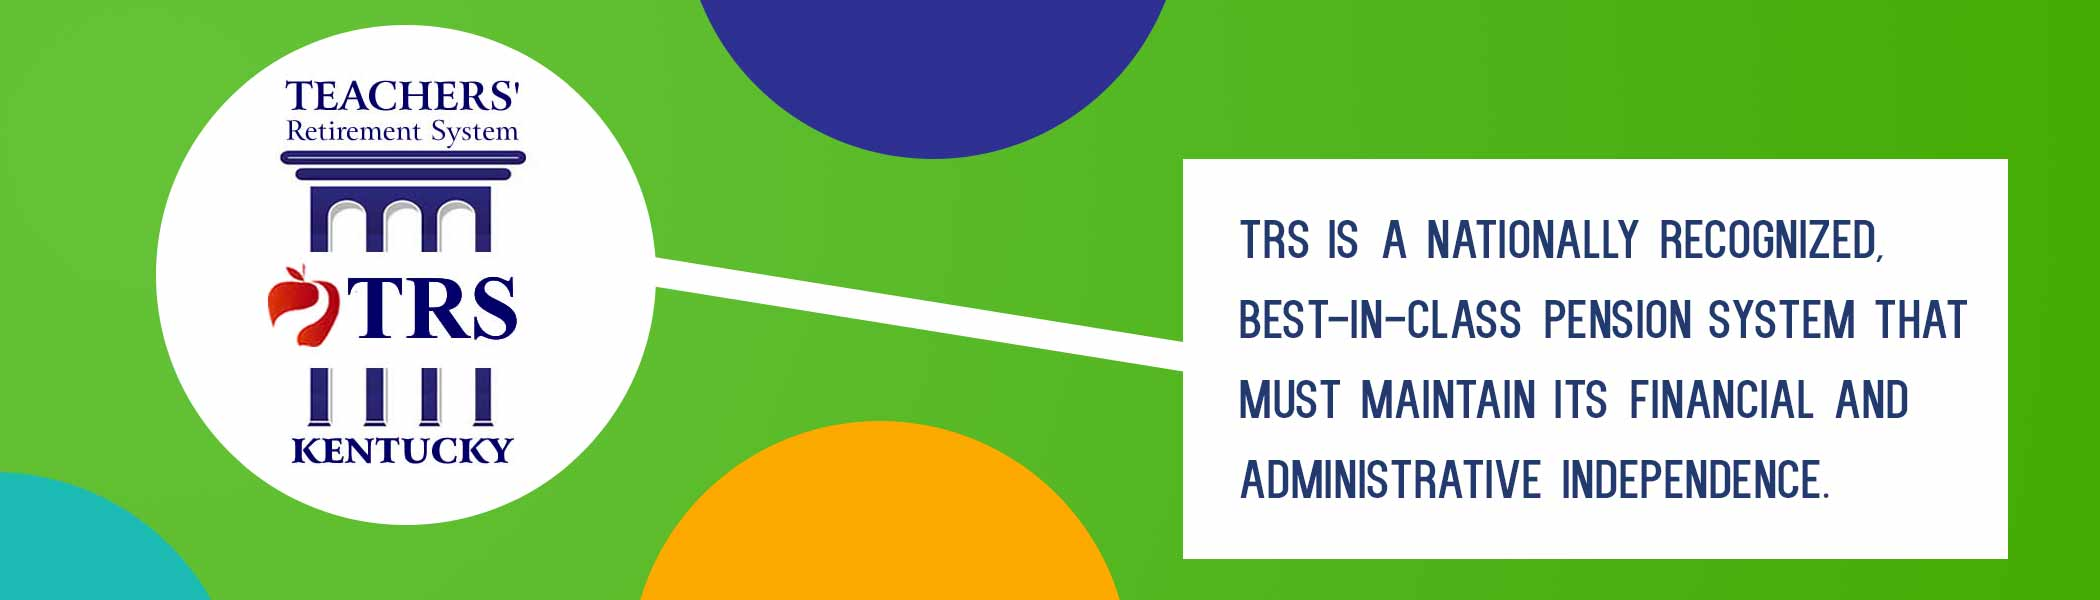 Teachers' Retirement System logo in white circle on green background with other empty circles around it. Line links TRS circle with copy box, which reads: TRS is a nationally recognized, best-in-class pension system that must maintain its financial and administrative independence.